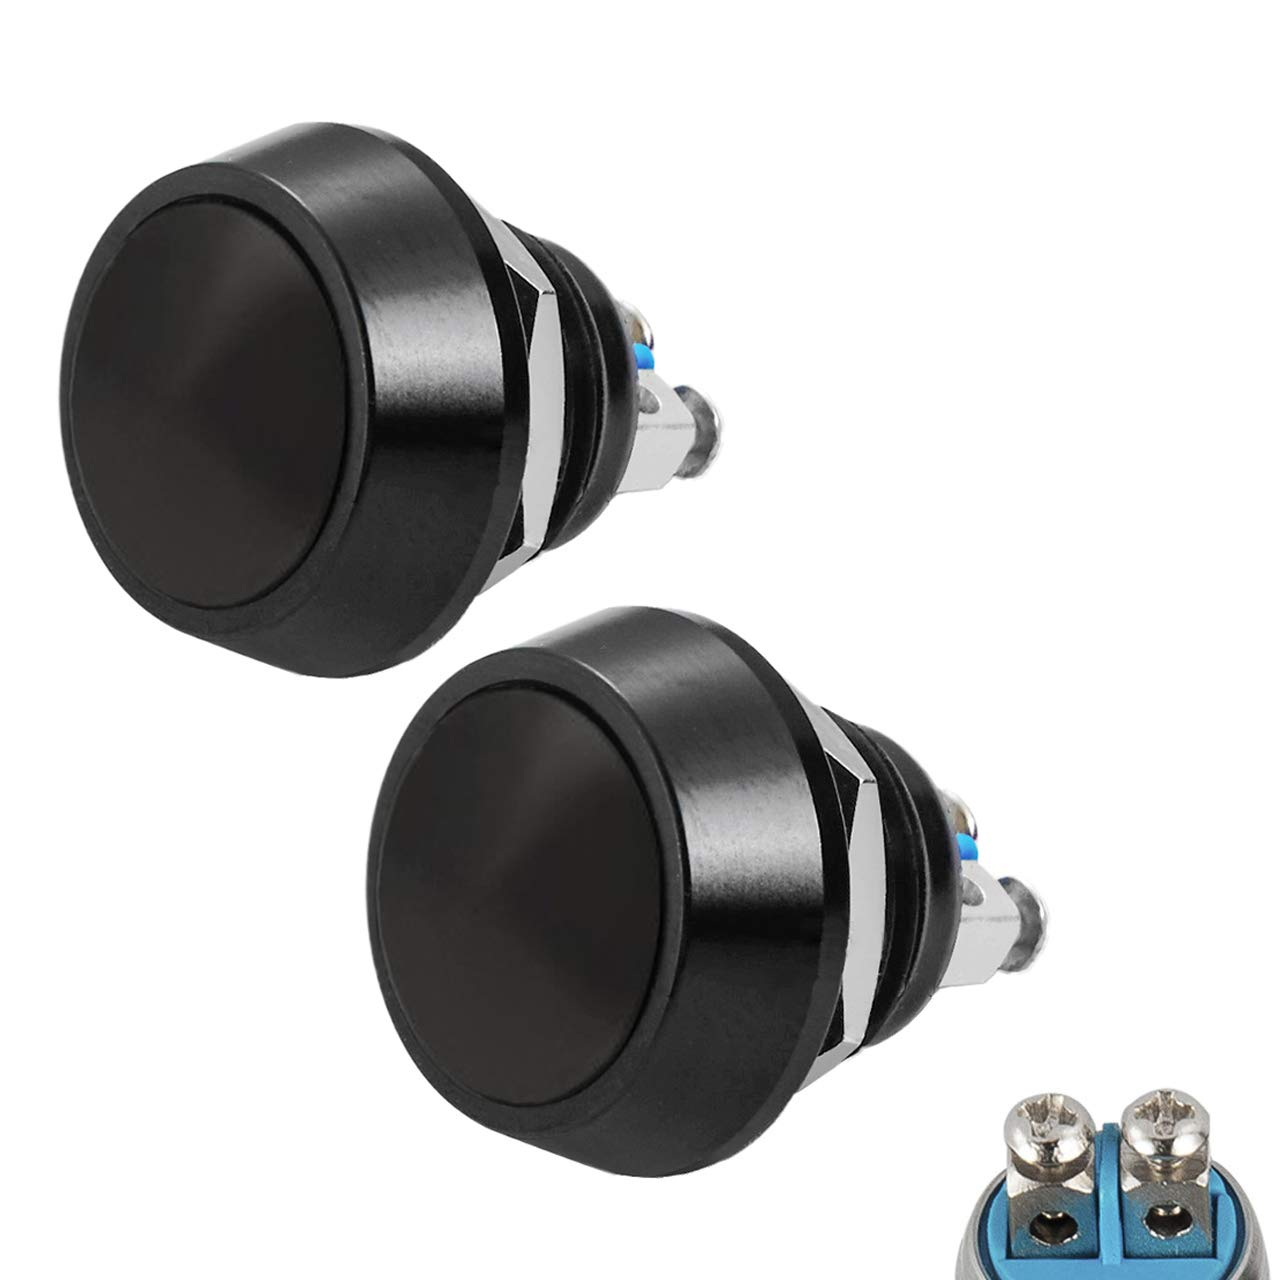 Quentacy 2Pack Momentary Push Button Switch Waterproof SPST DC 36V 2A Metal Shell 12mm 1/2'' Hole (Black)